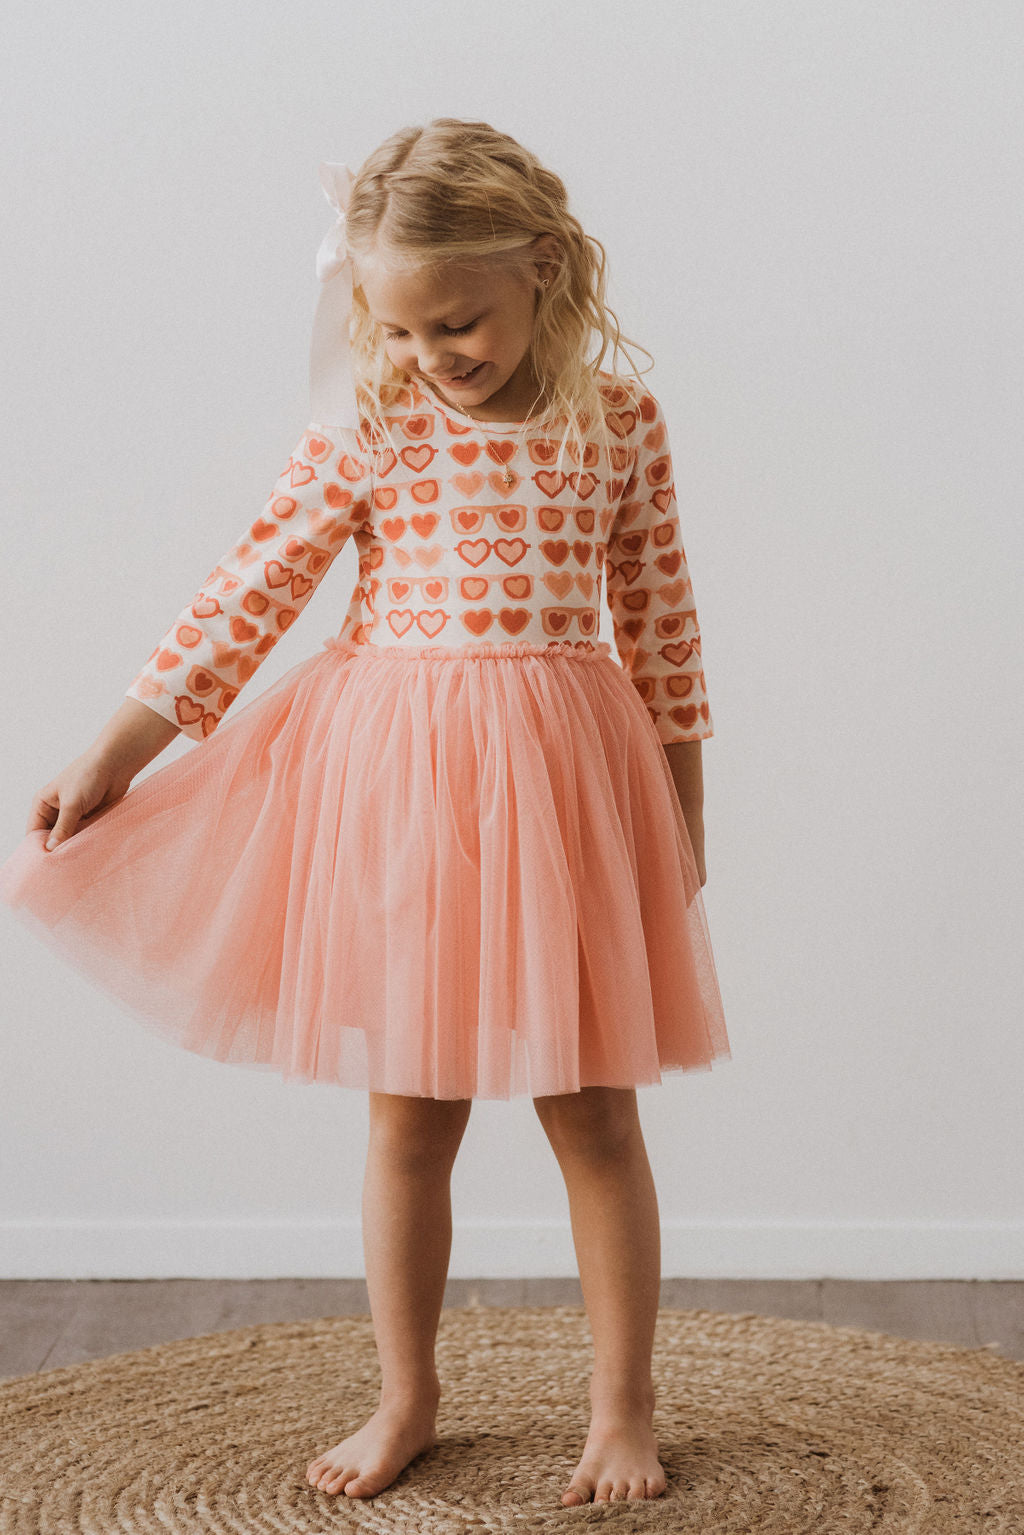 The Heart Eyes Valentines Dress